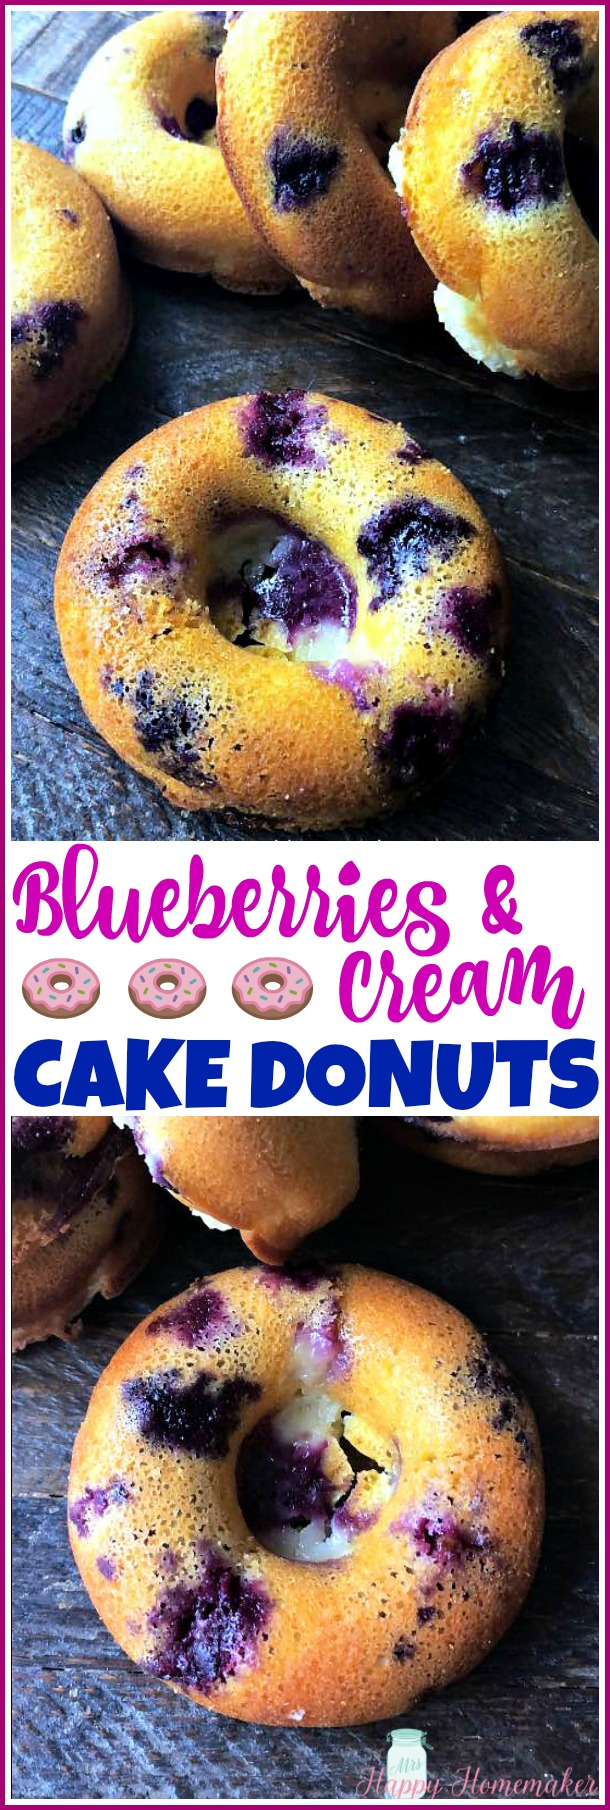 Blueberries & Cream Cake Donuts | MrsHappyHomemaker.com